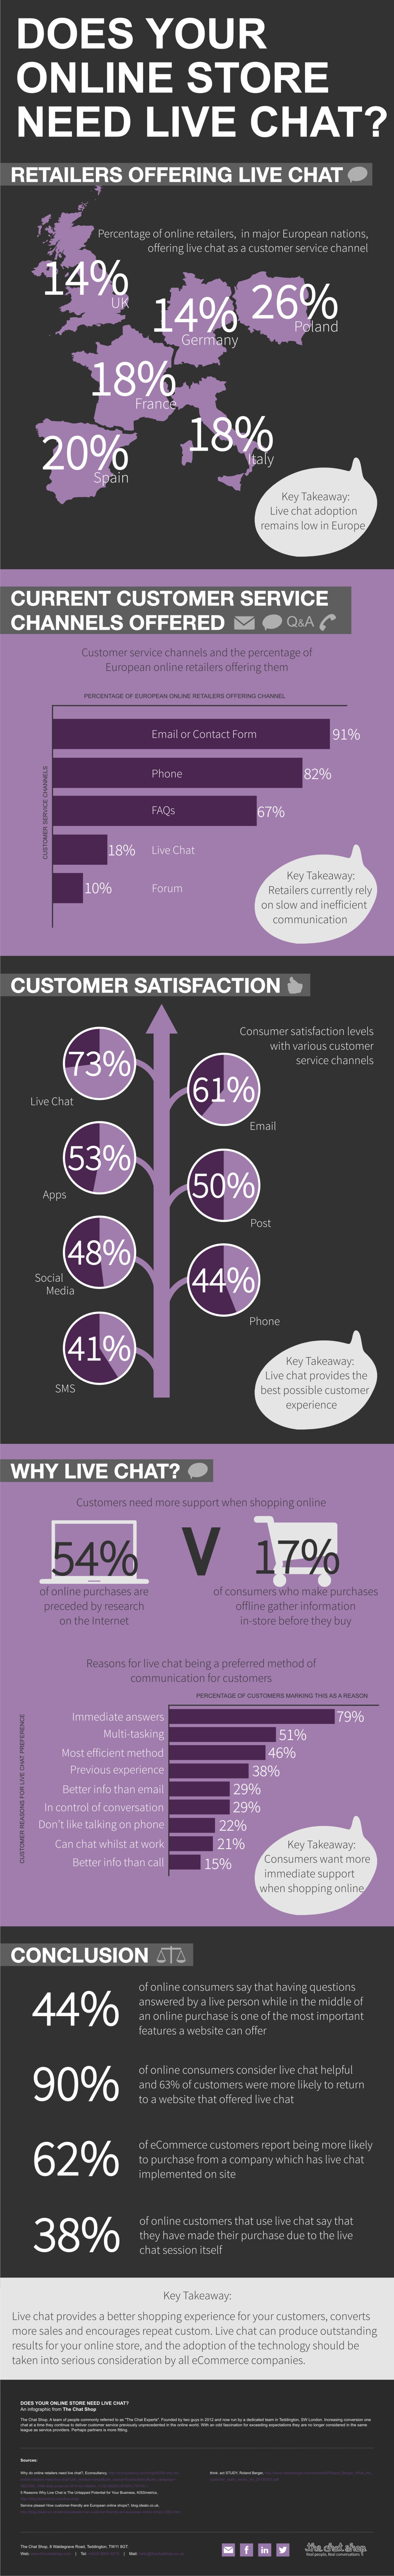 Does your online store need live chat